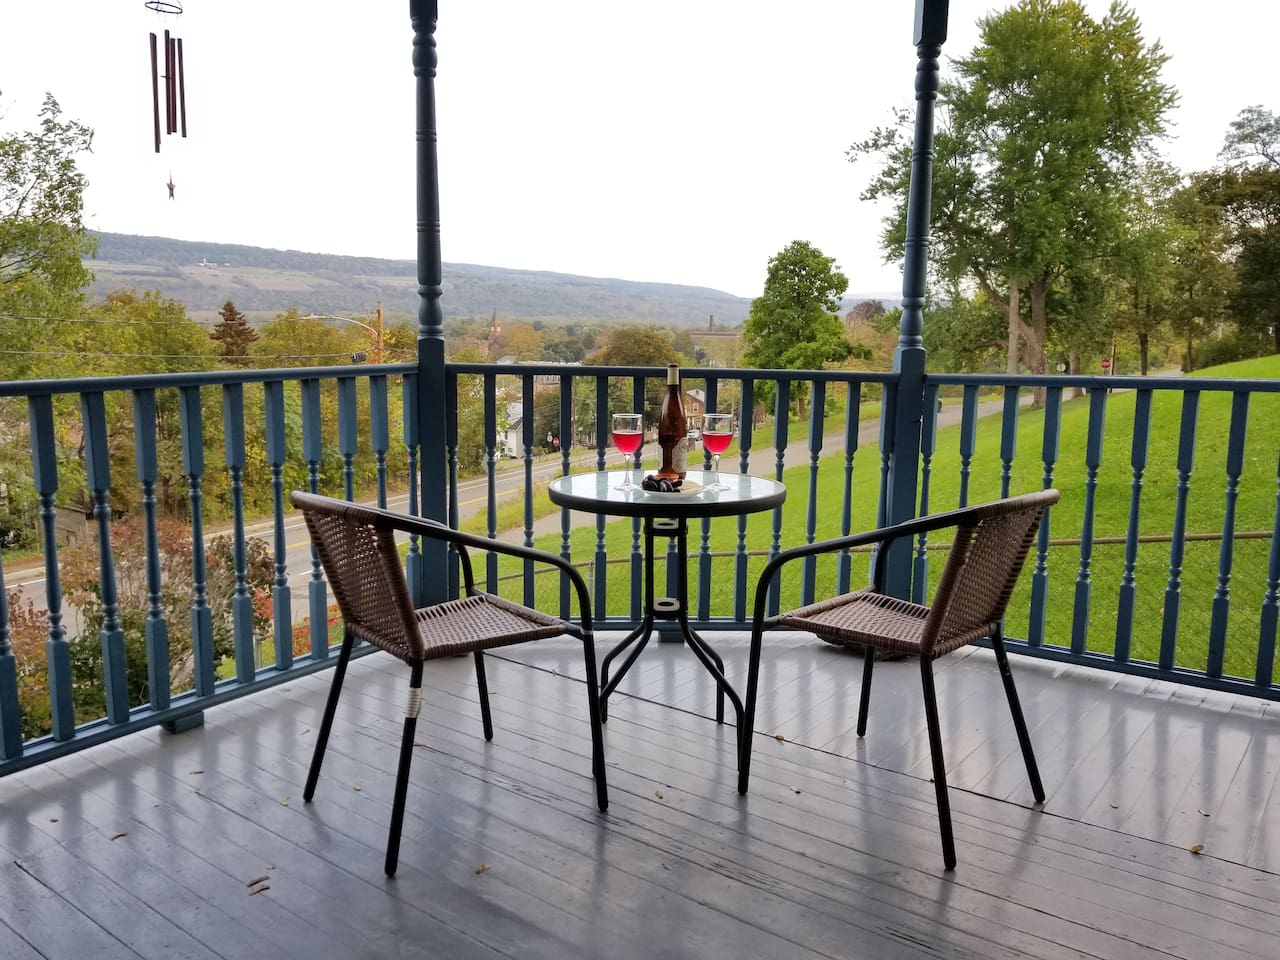 Our large front porch overlooking Watkins Glen